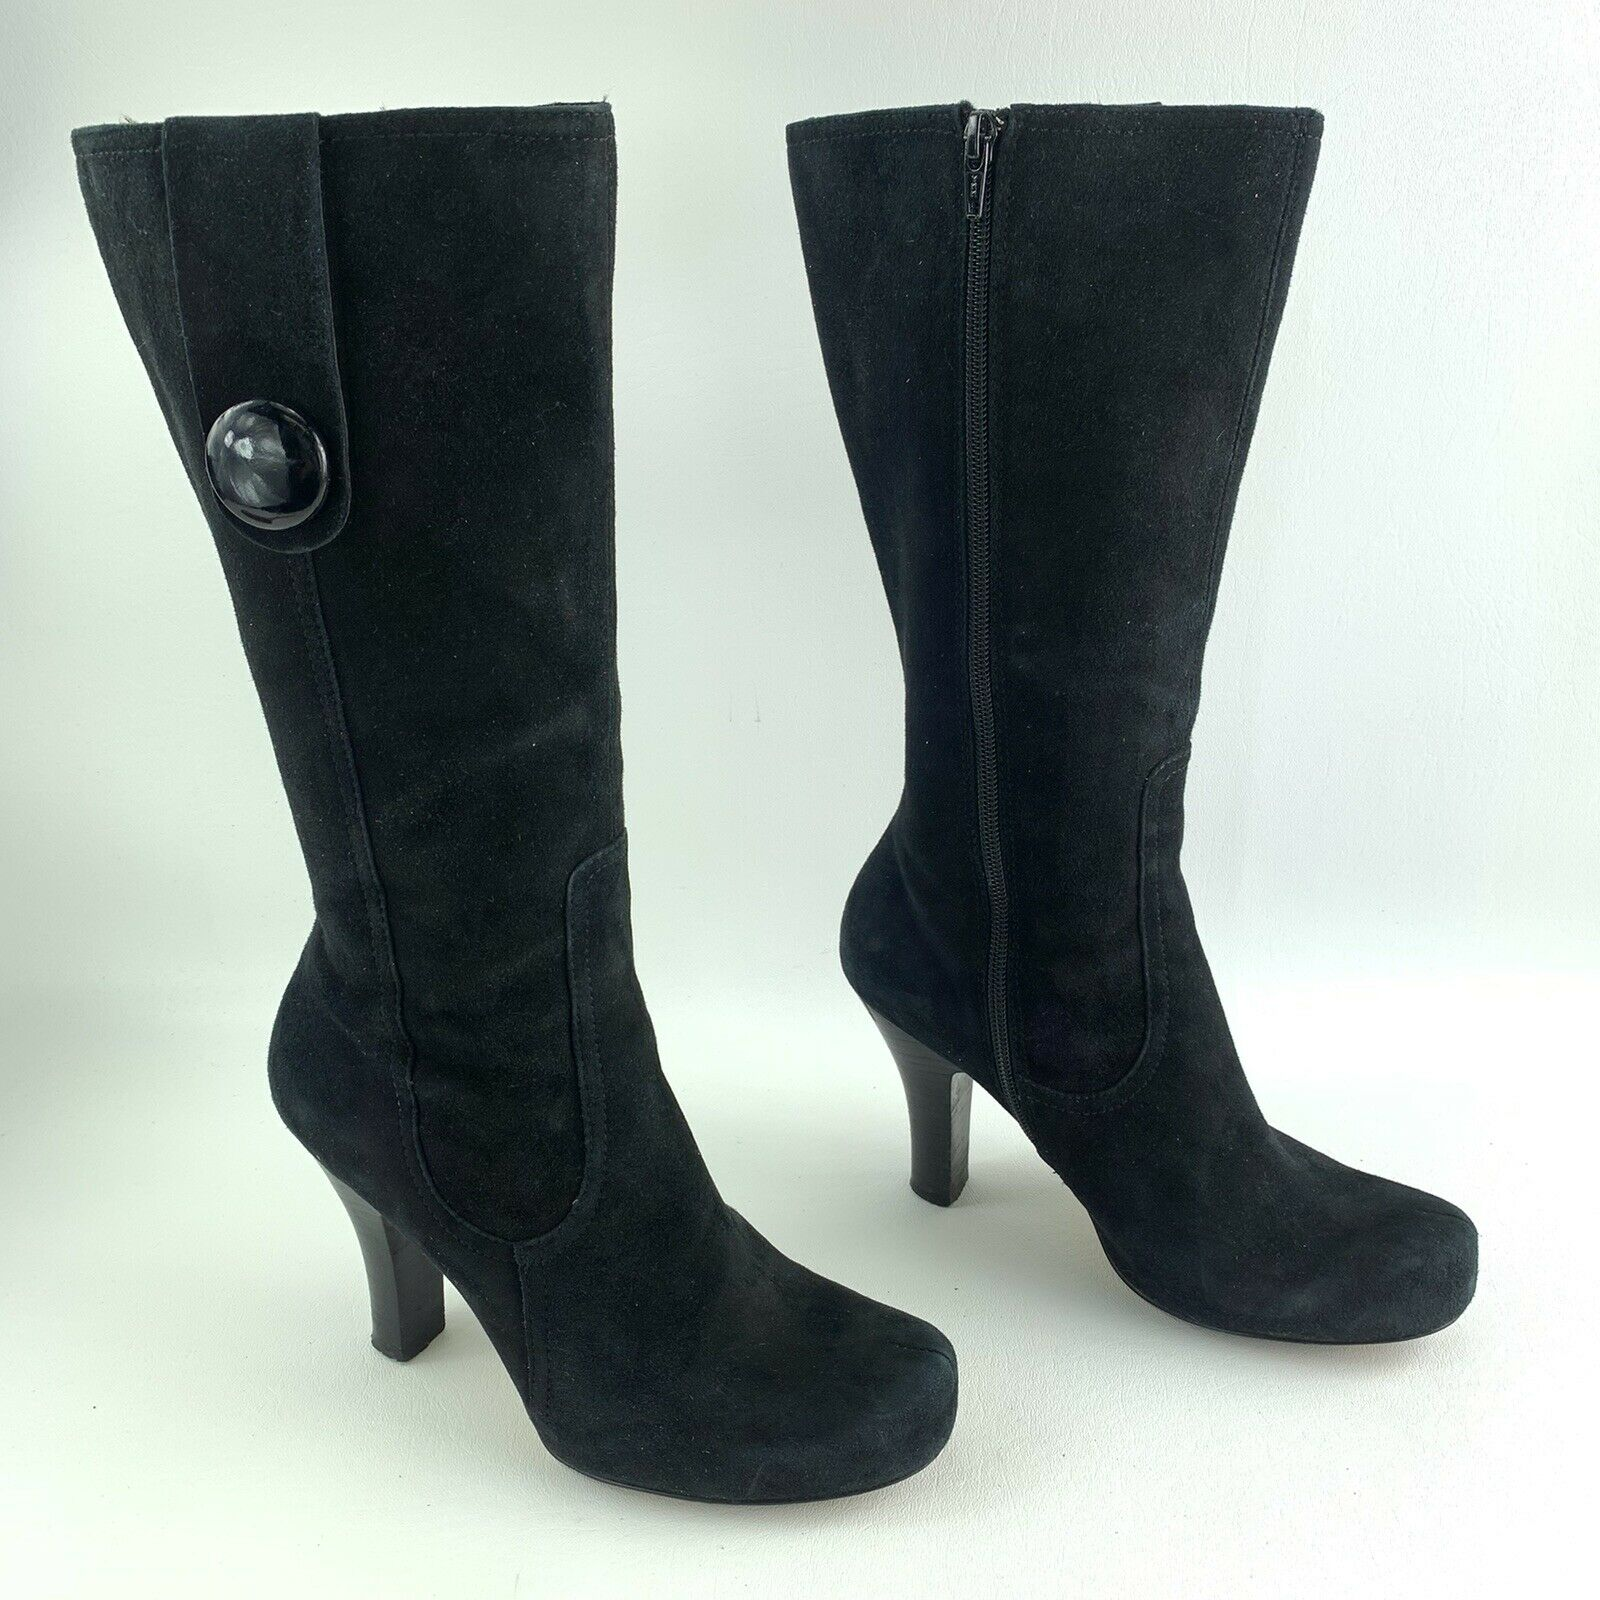 Franco Sarto Size 7 M US Magia Black Suede Boots High Heeled Button Accent